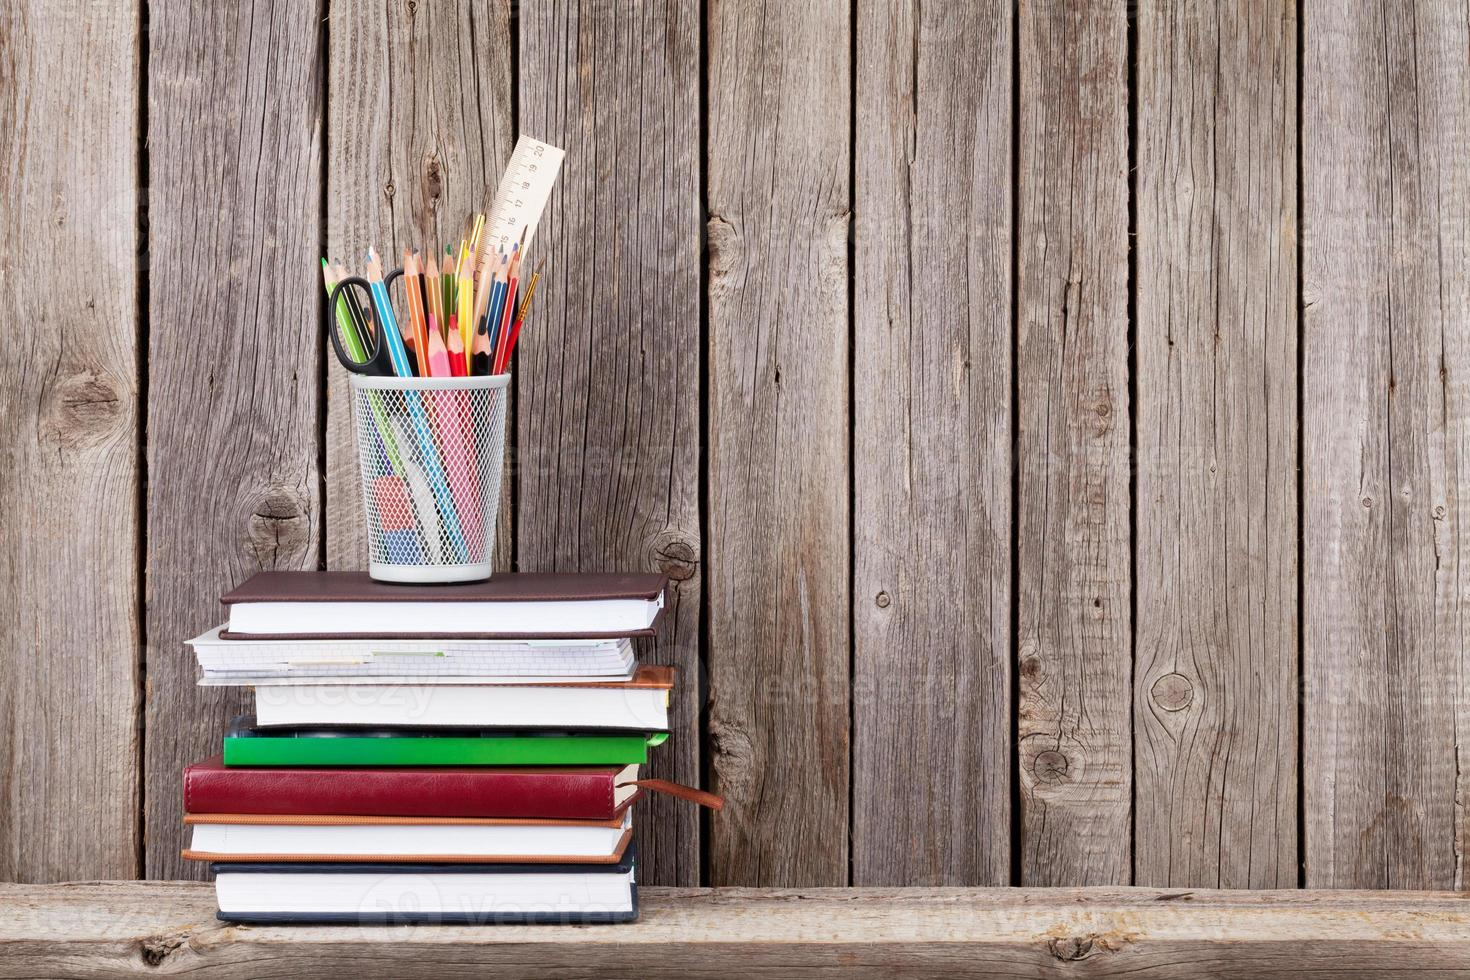 Wooden shelf with books and supplies photo